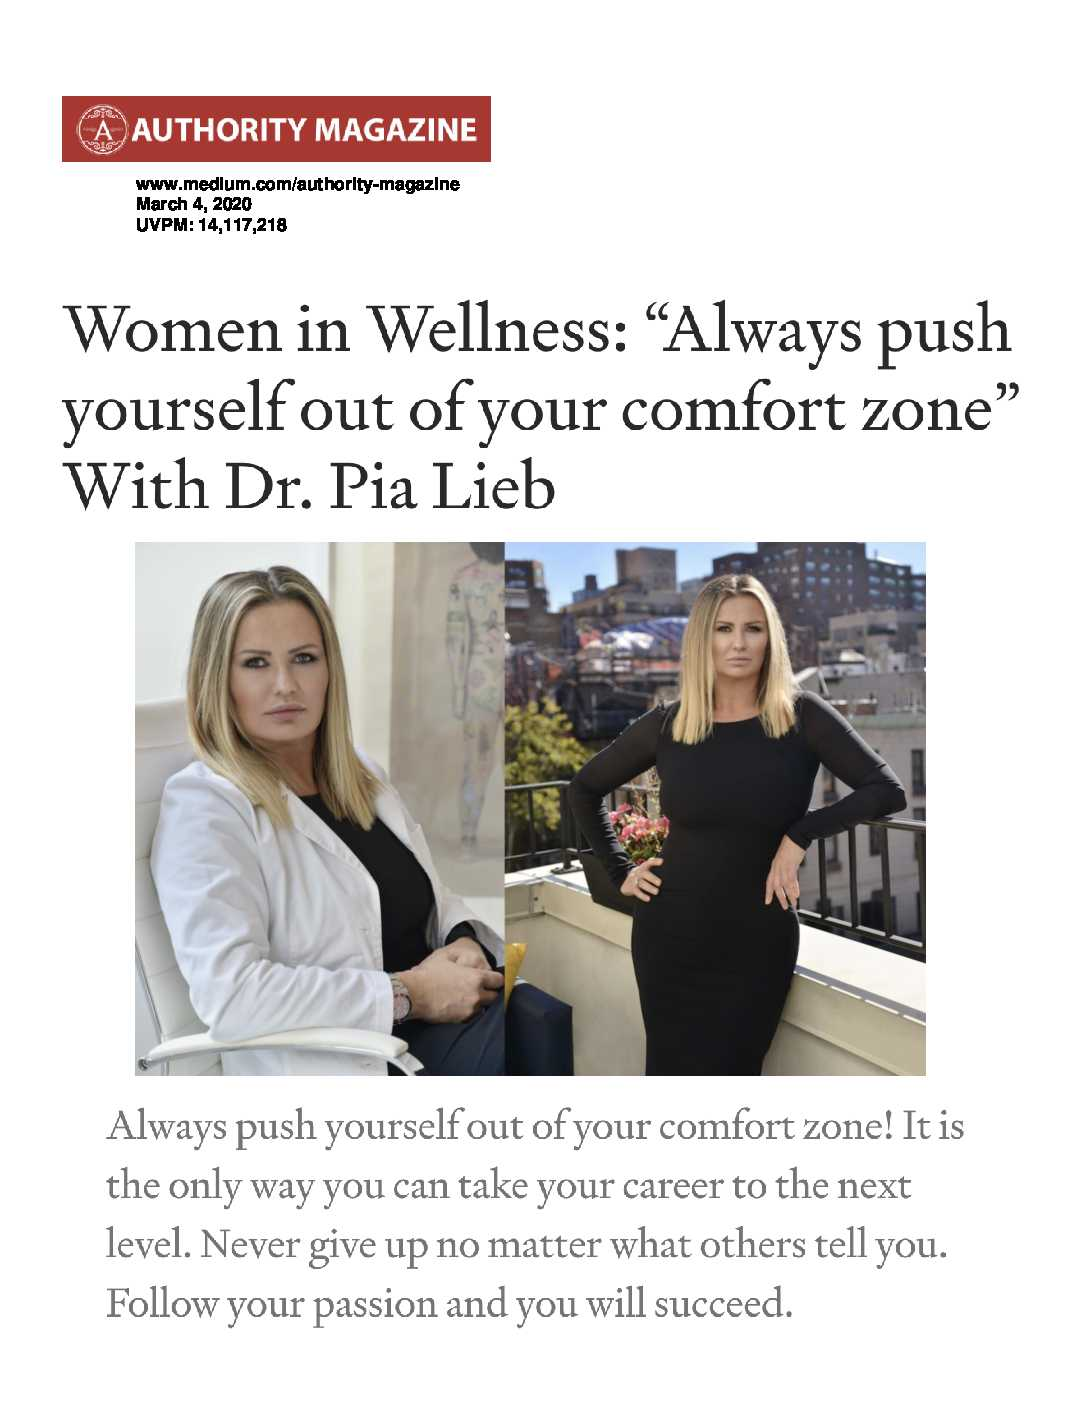 Link to Authority Magazine article discussing pushing yourself out of your comfort zone.